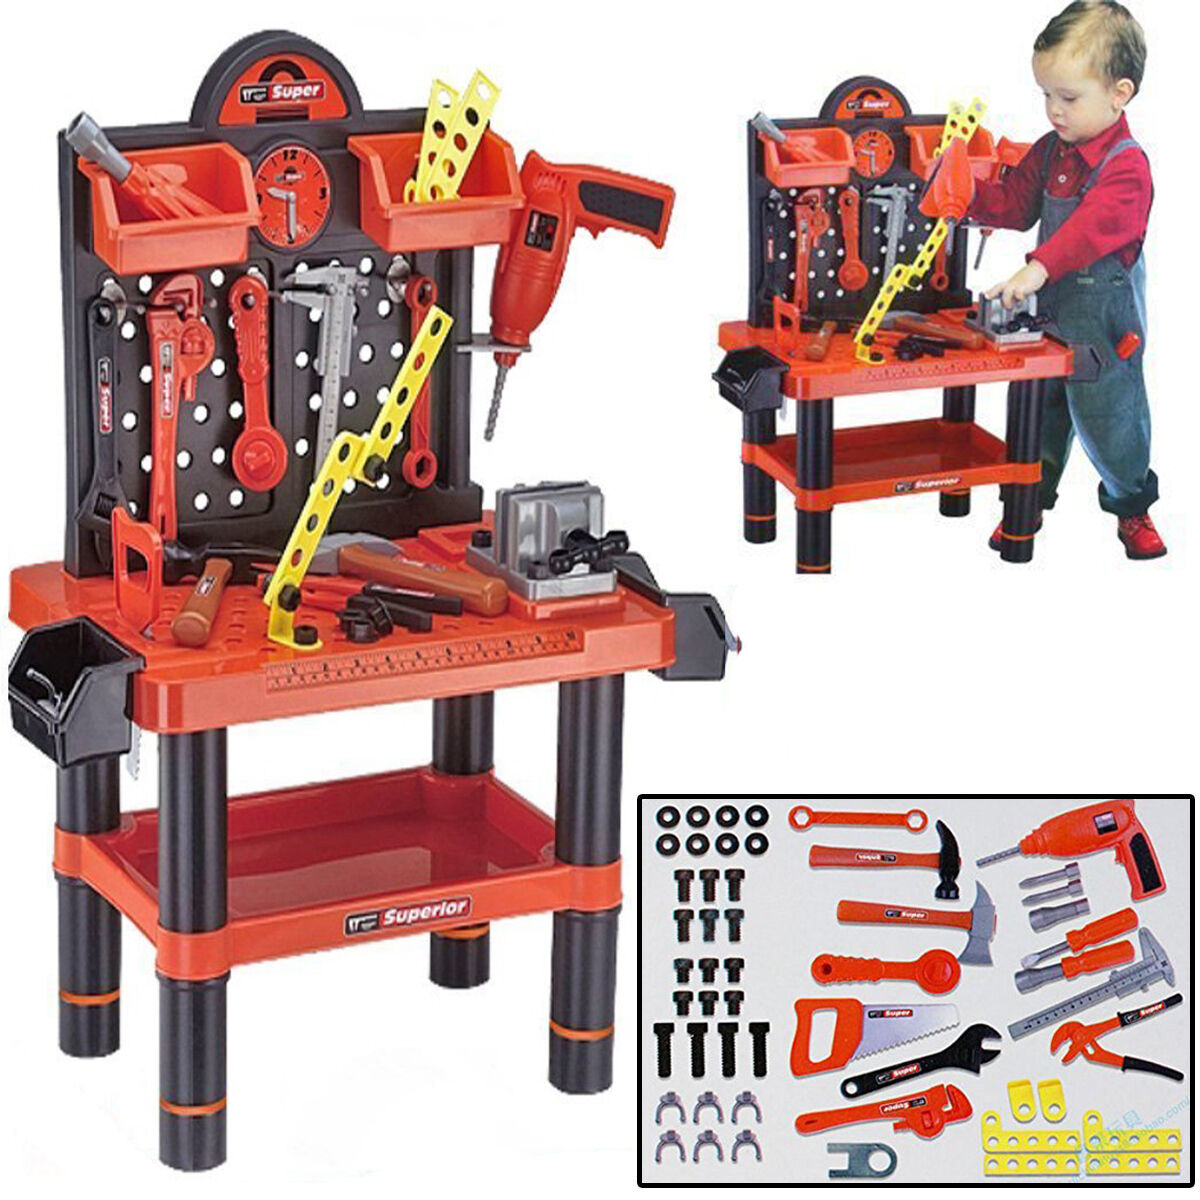 57pc Large Kids Tool Set Work Bench Child Workshop Toolbench Pretend Playset Toy Ebay